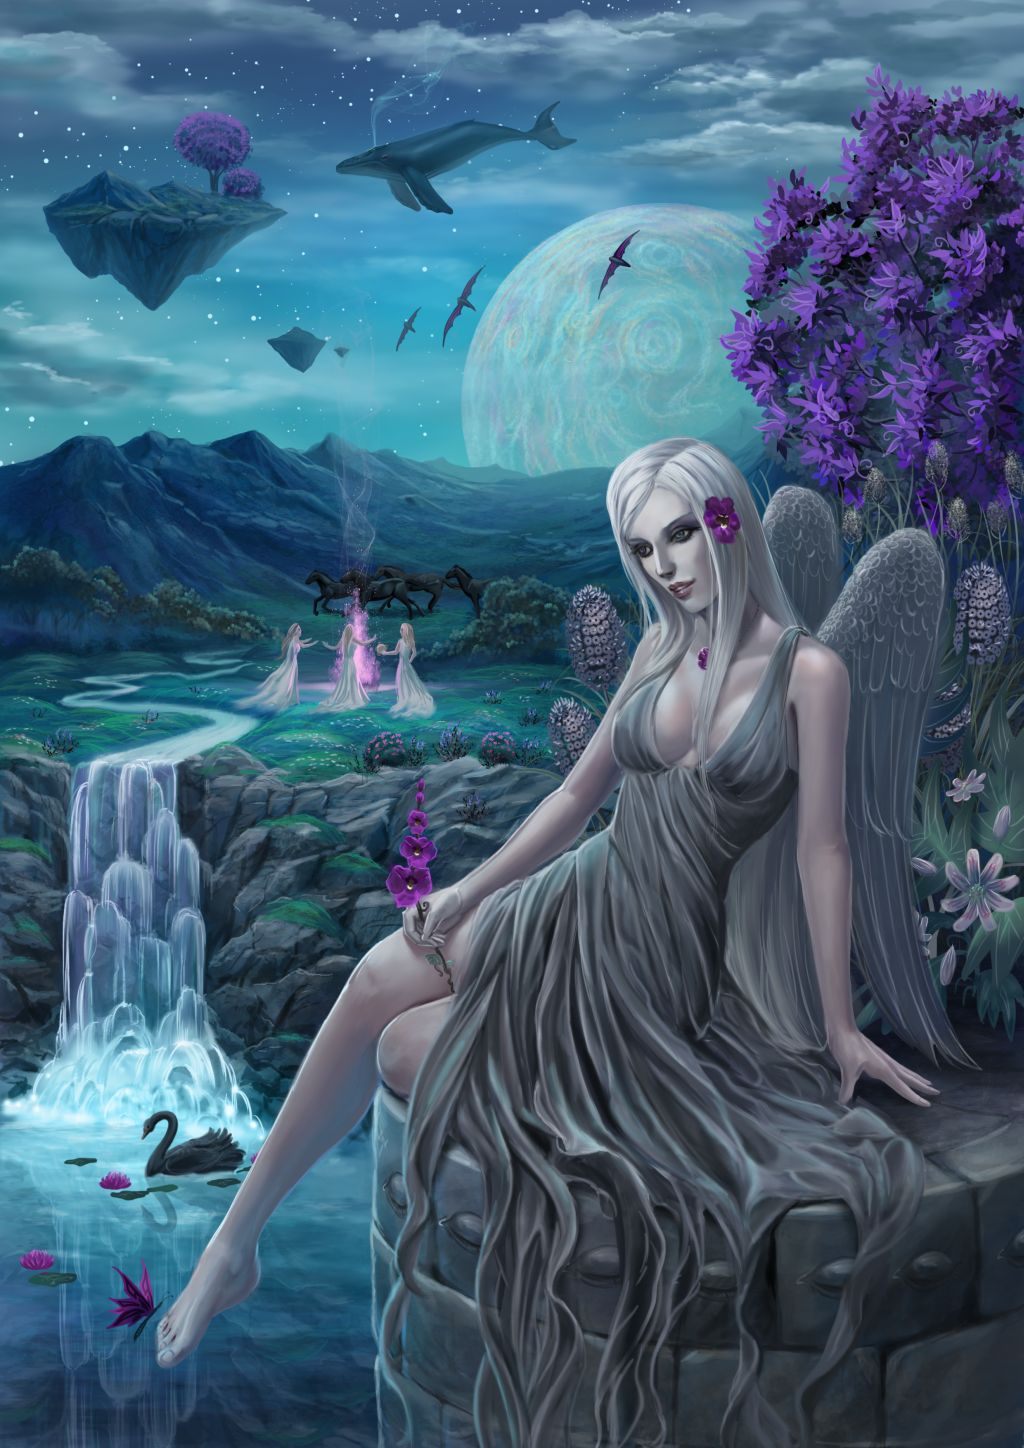 Valnurana, Goddess of Sleep and Dreams